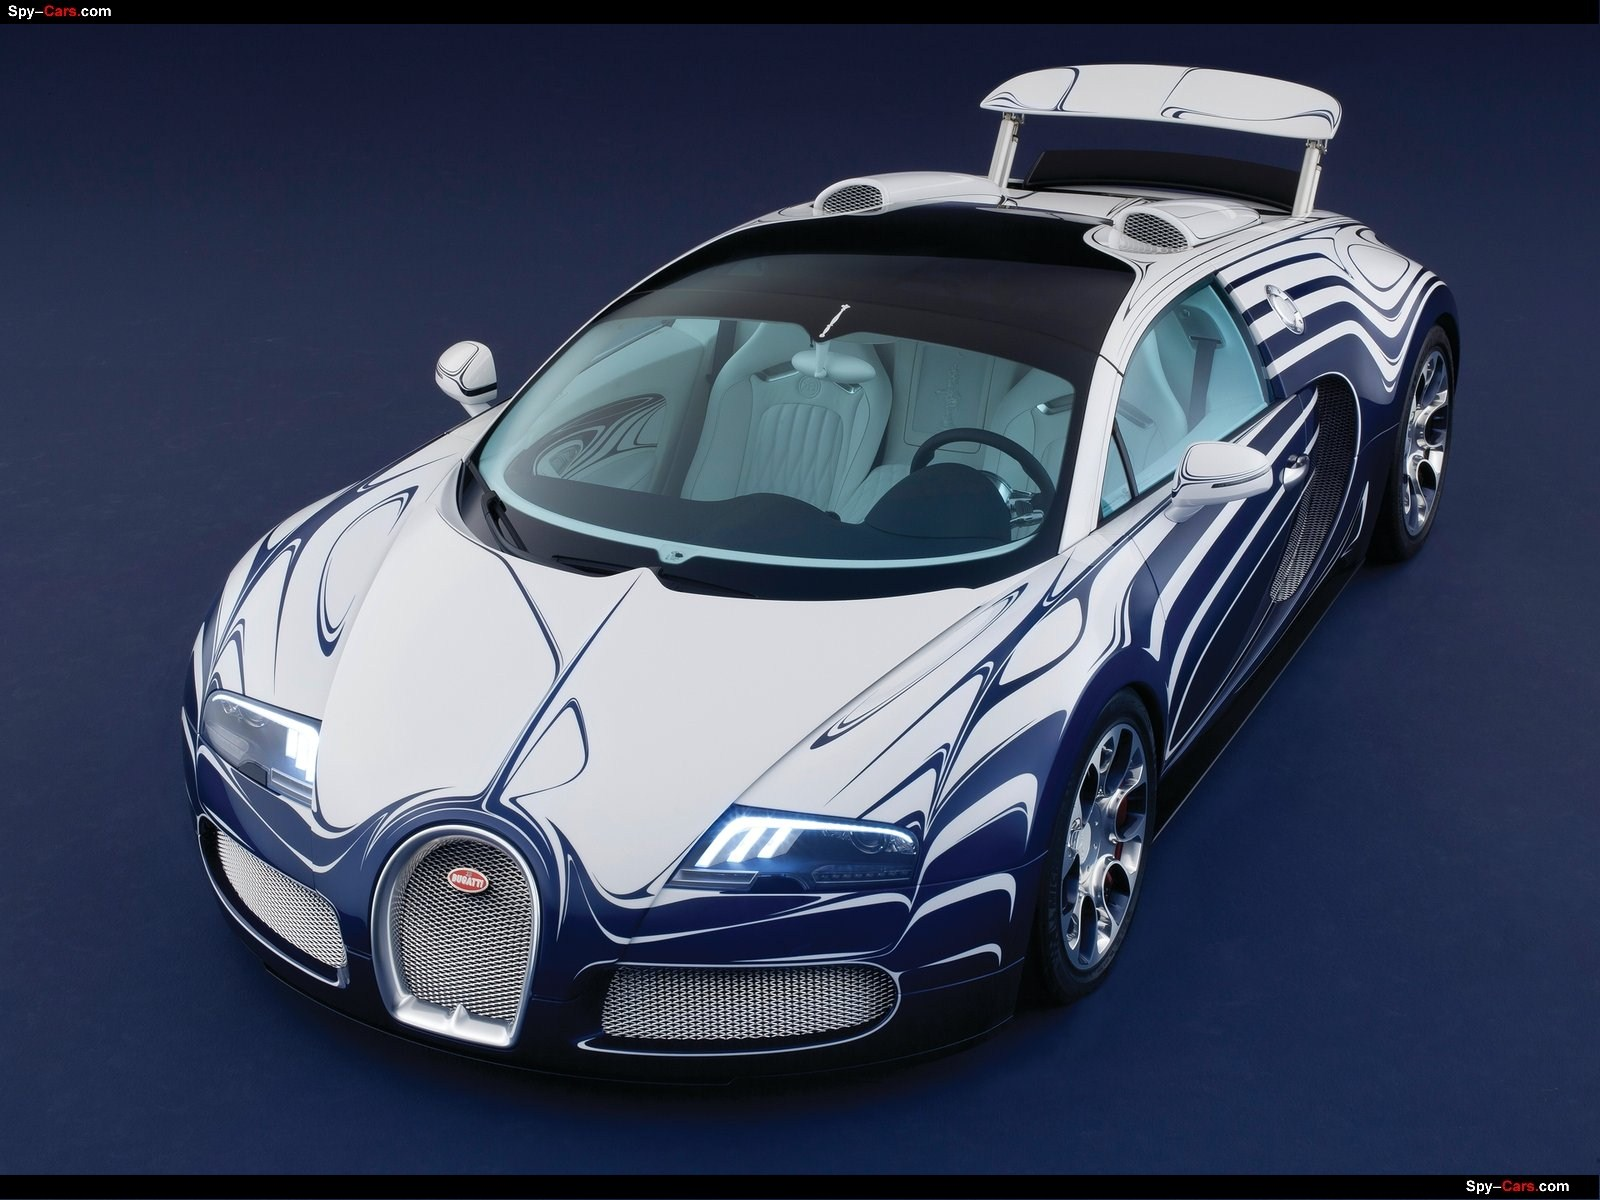 dubai black uae success overall the hence showroom of one for bugattis opening largest close key markets opens is abundant world diamond to s bugatti being mafia in company most